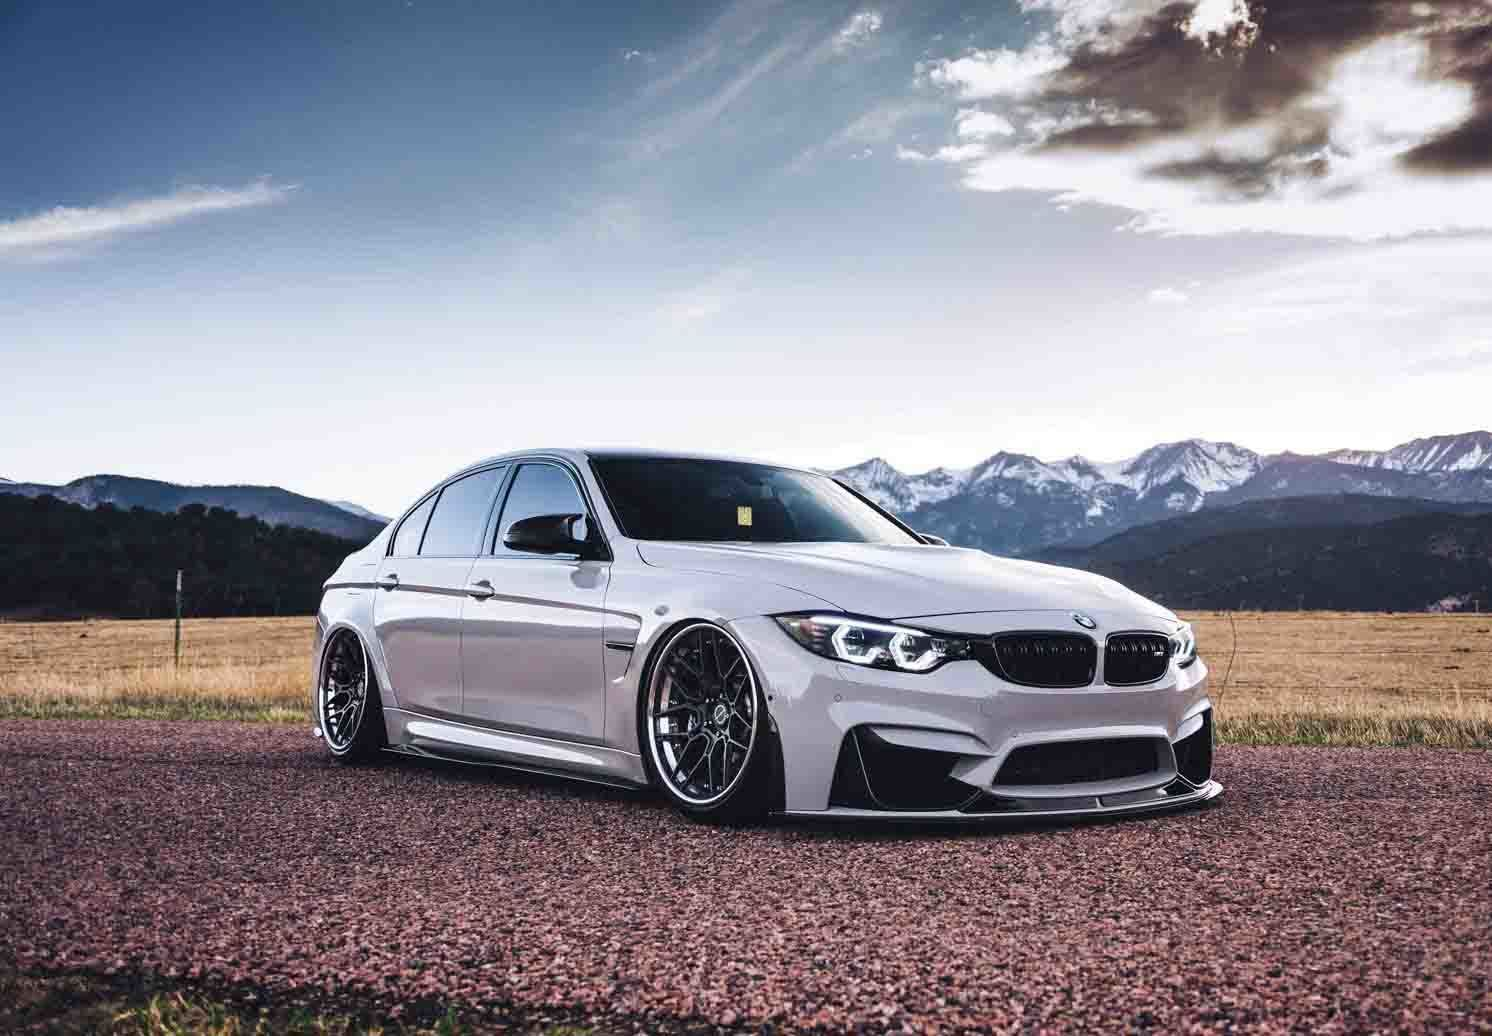 images-products-1-2660-232974948-fashion-grey-bmw-f80-m3-brixton-forged-cm8-targa-series-3-piece-concave-forged-wheels-20-brushed.jpg